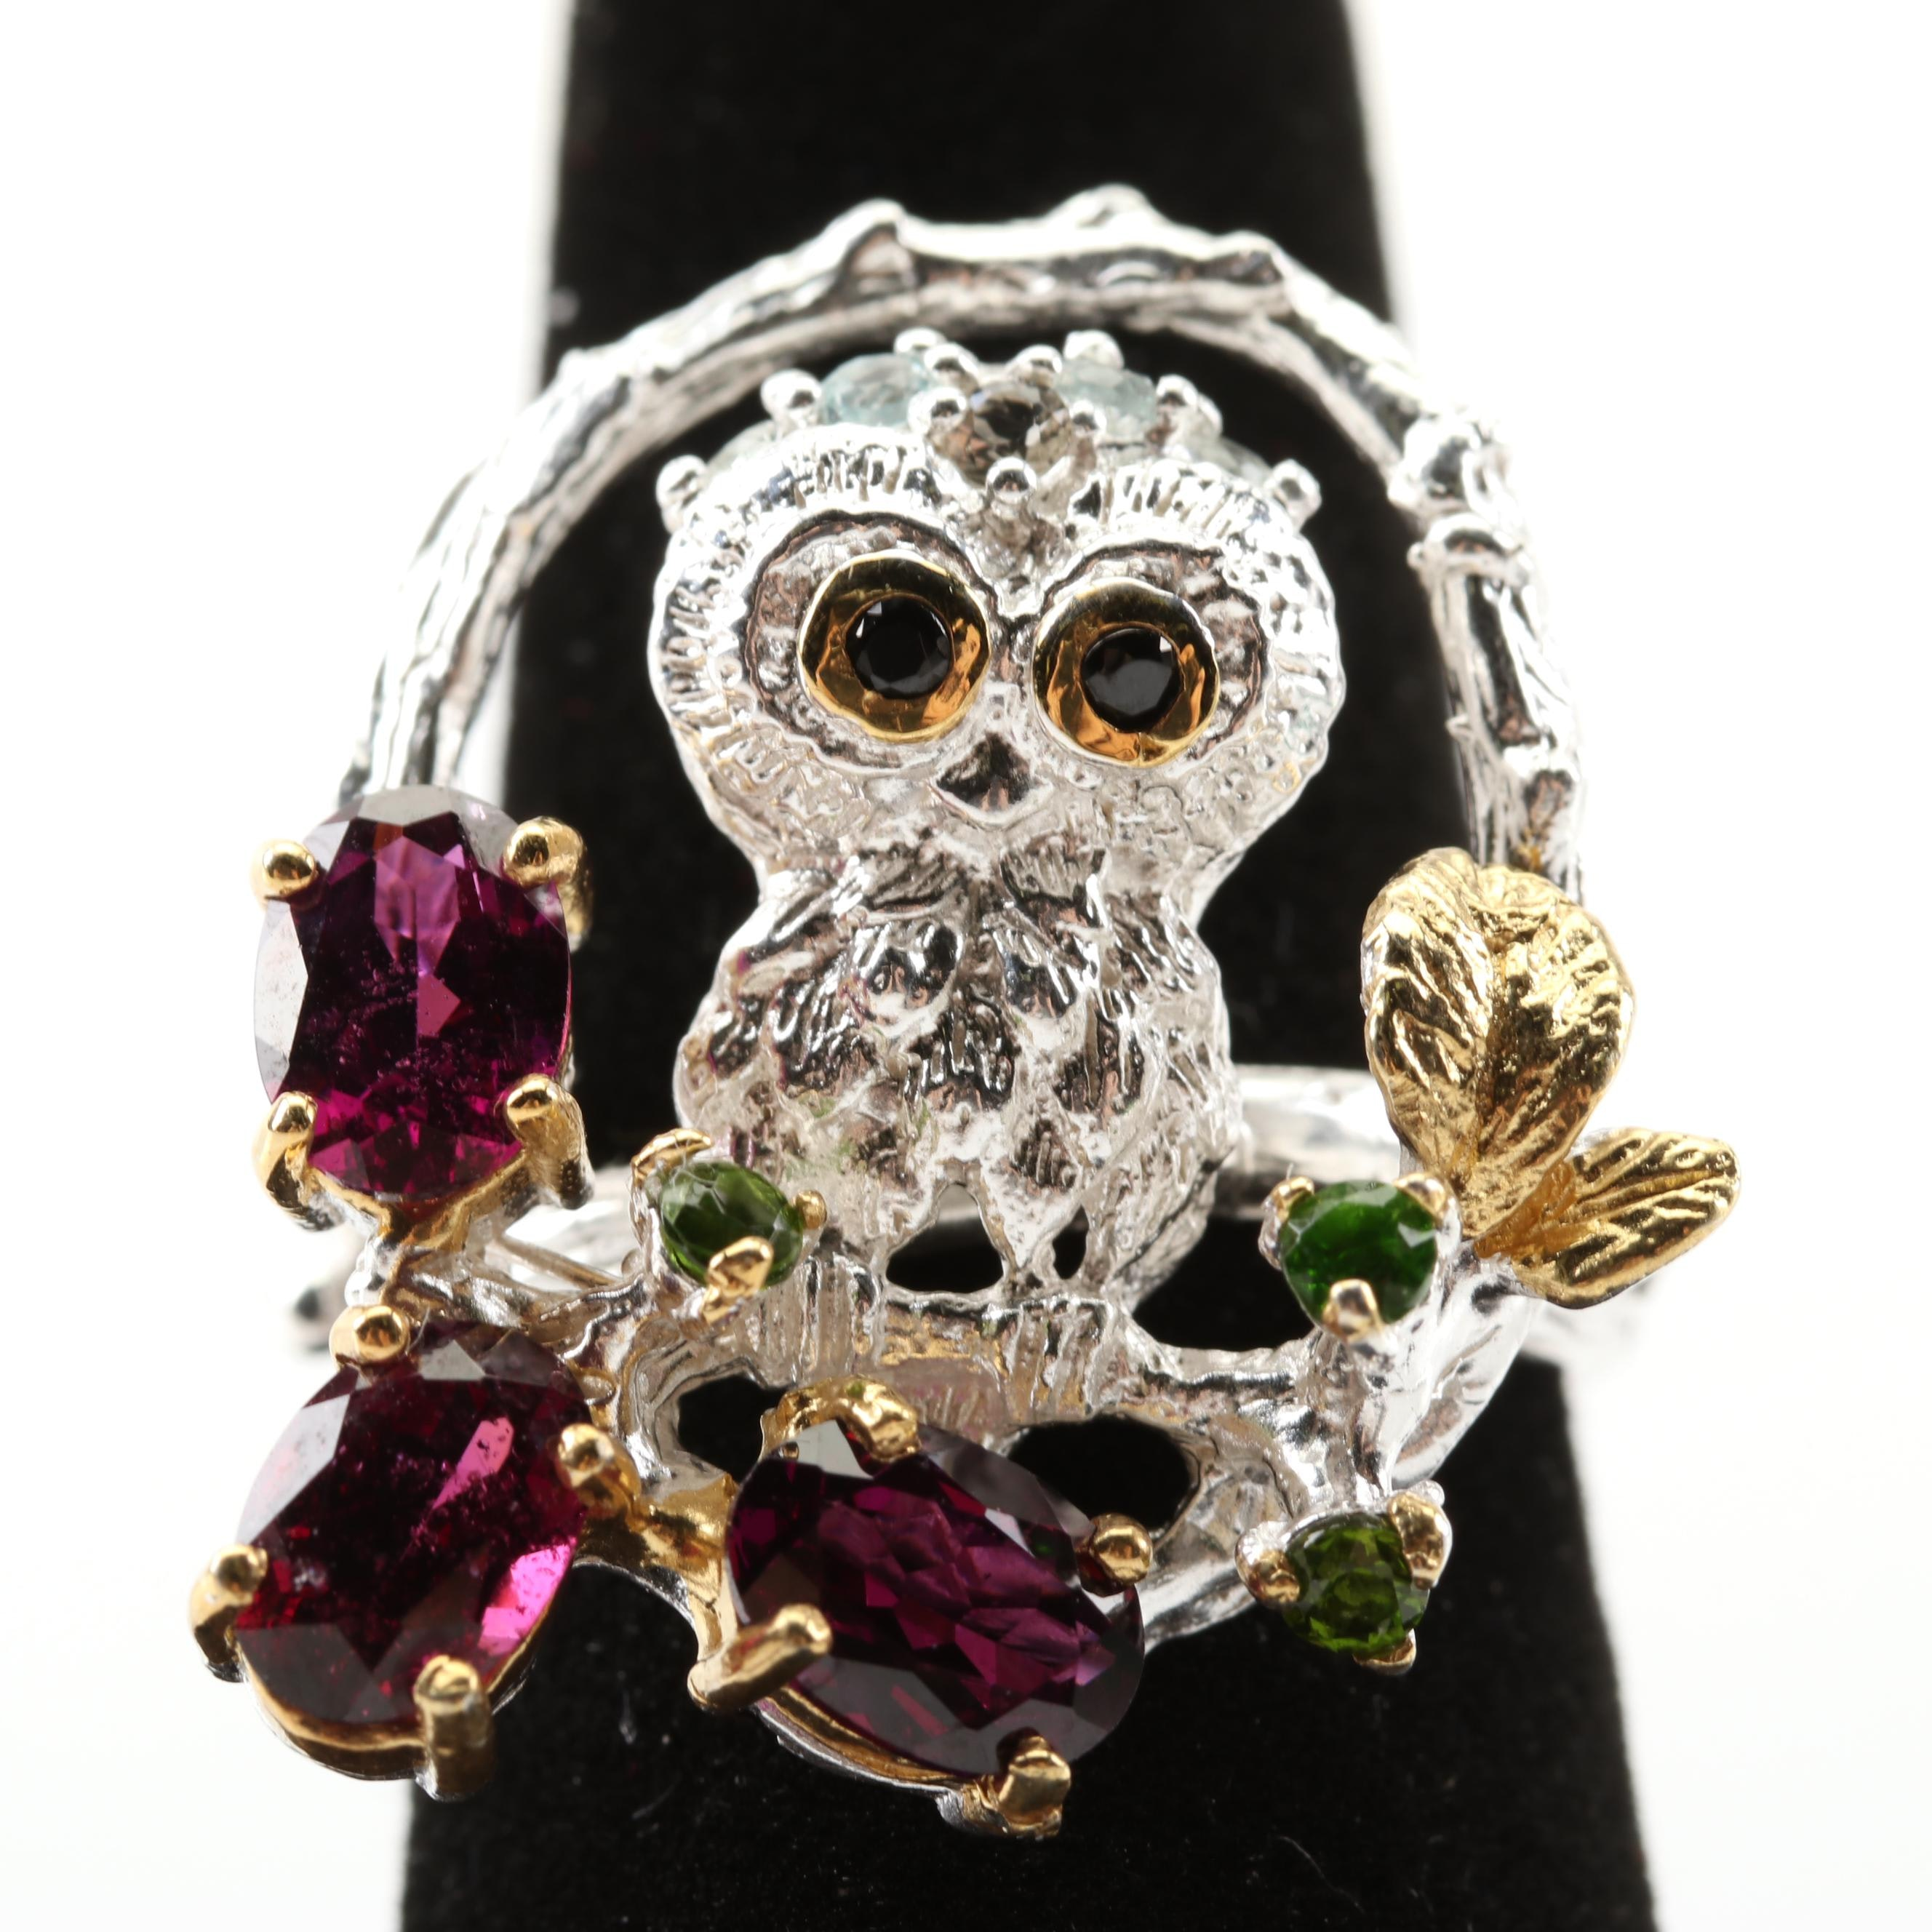 Sterling Silver Owl Ring with Garnet and Peridot Accents